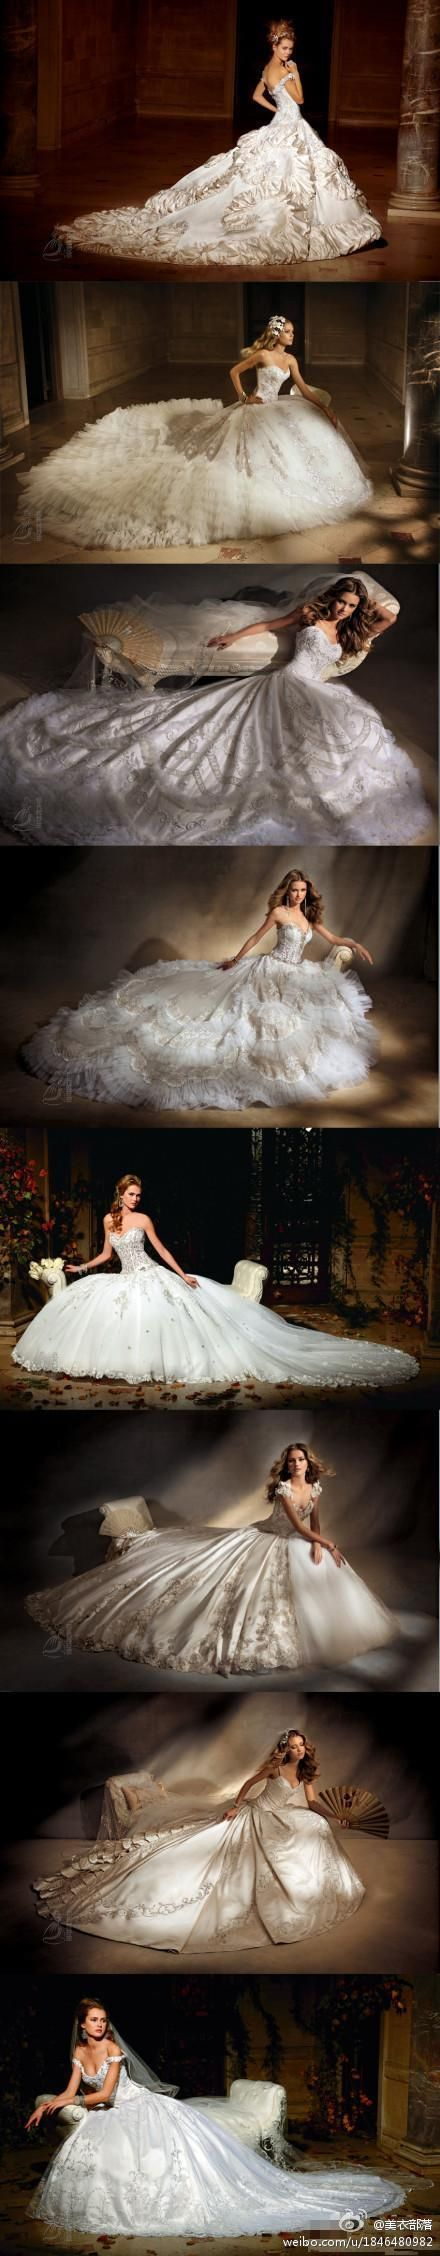 Def don't want a Cinderella gown when I get married... But these are gorgeous!